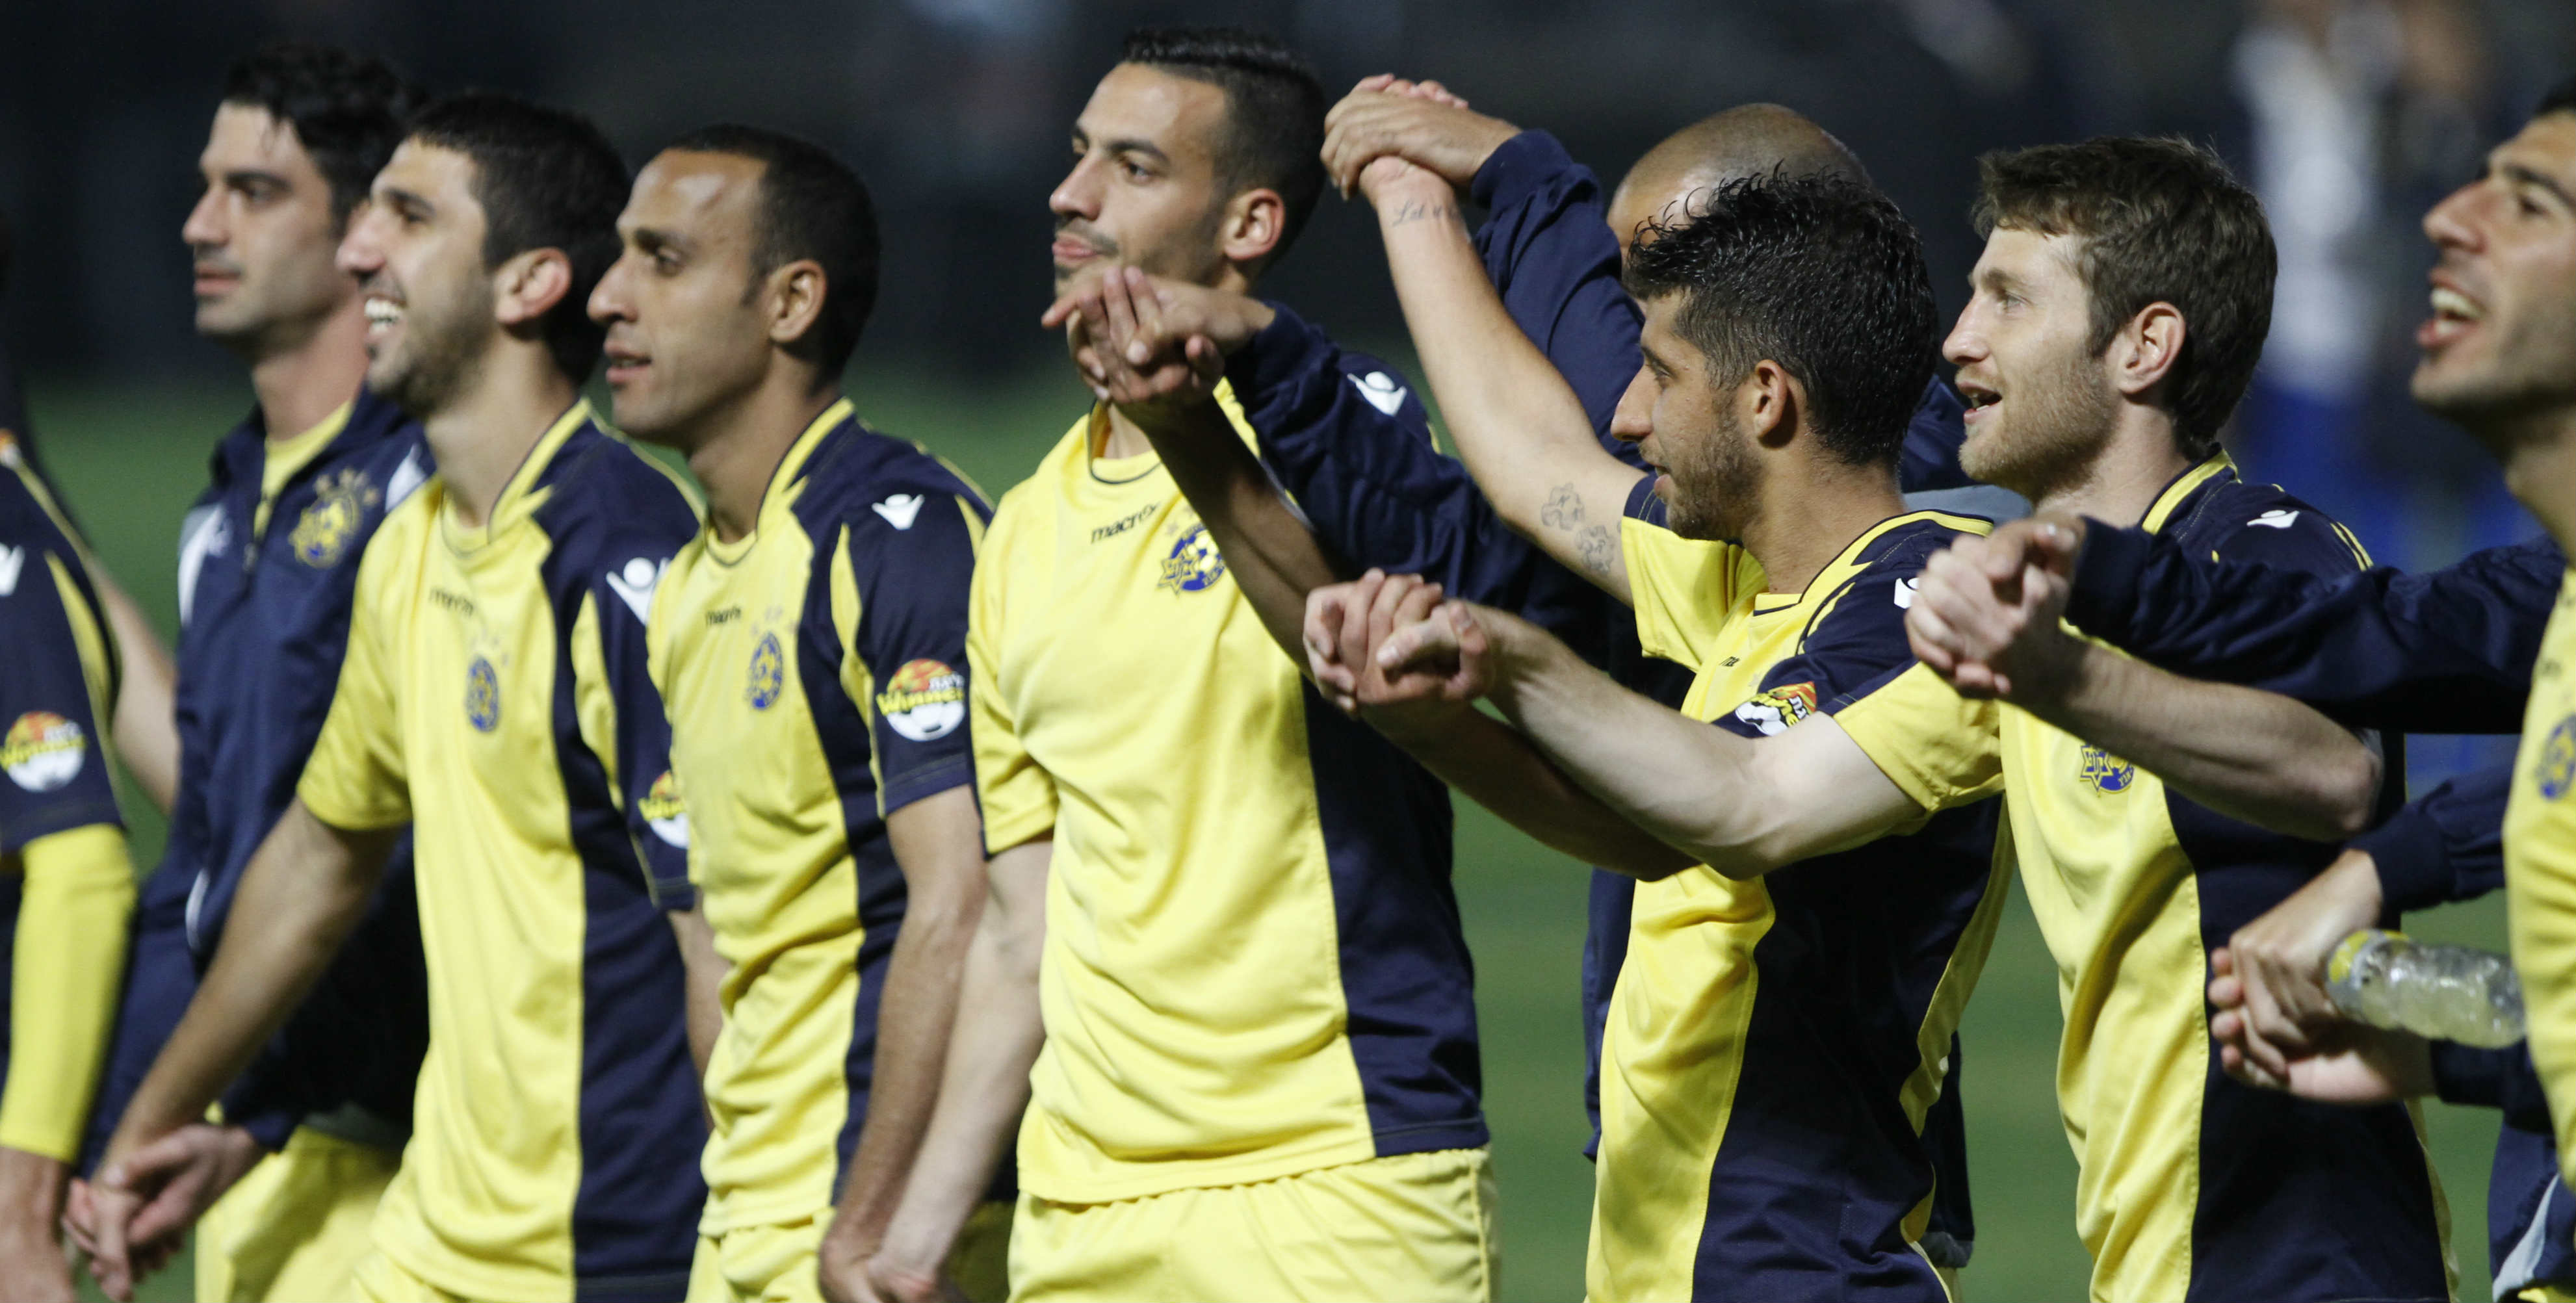 Courtesy Maccabi Tel Aviv website